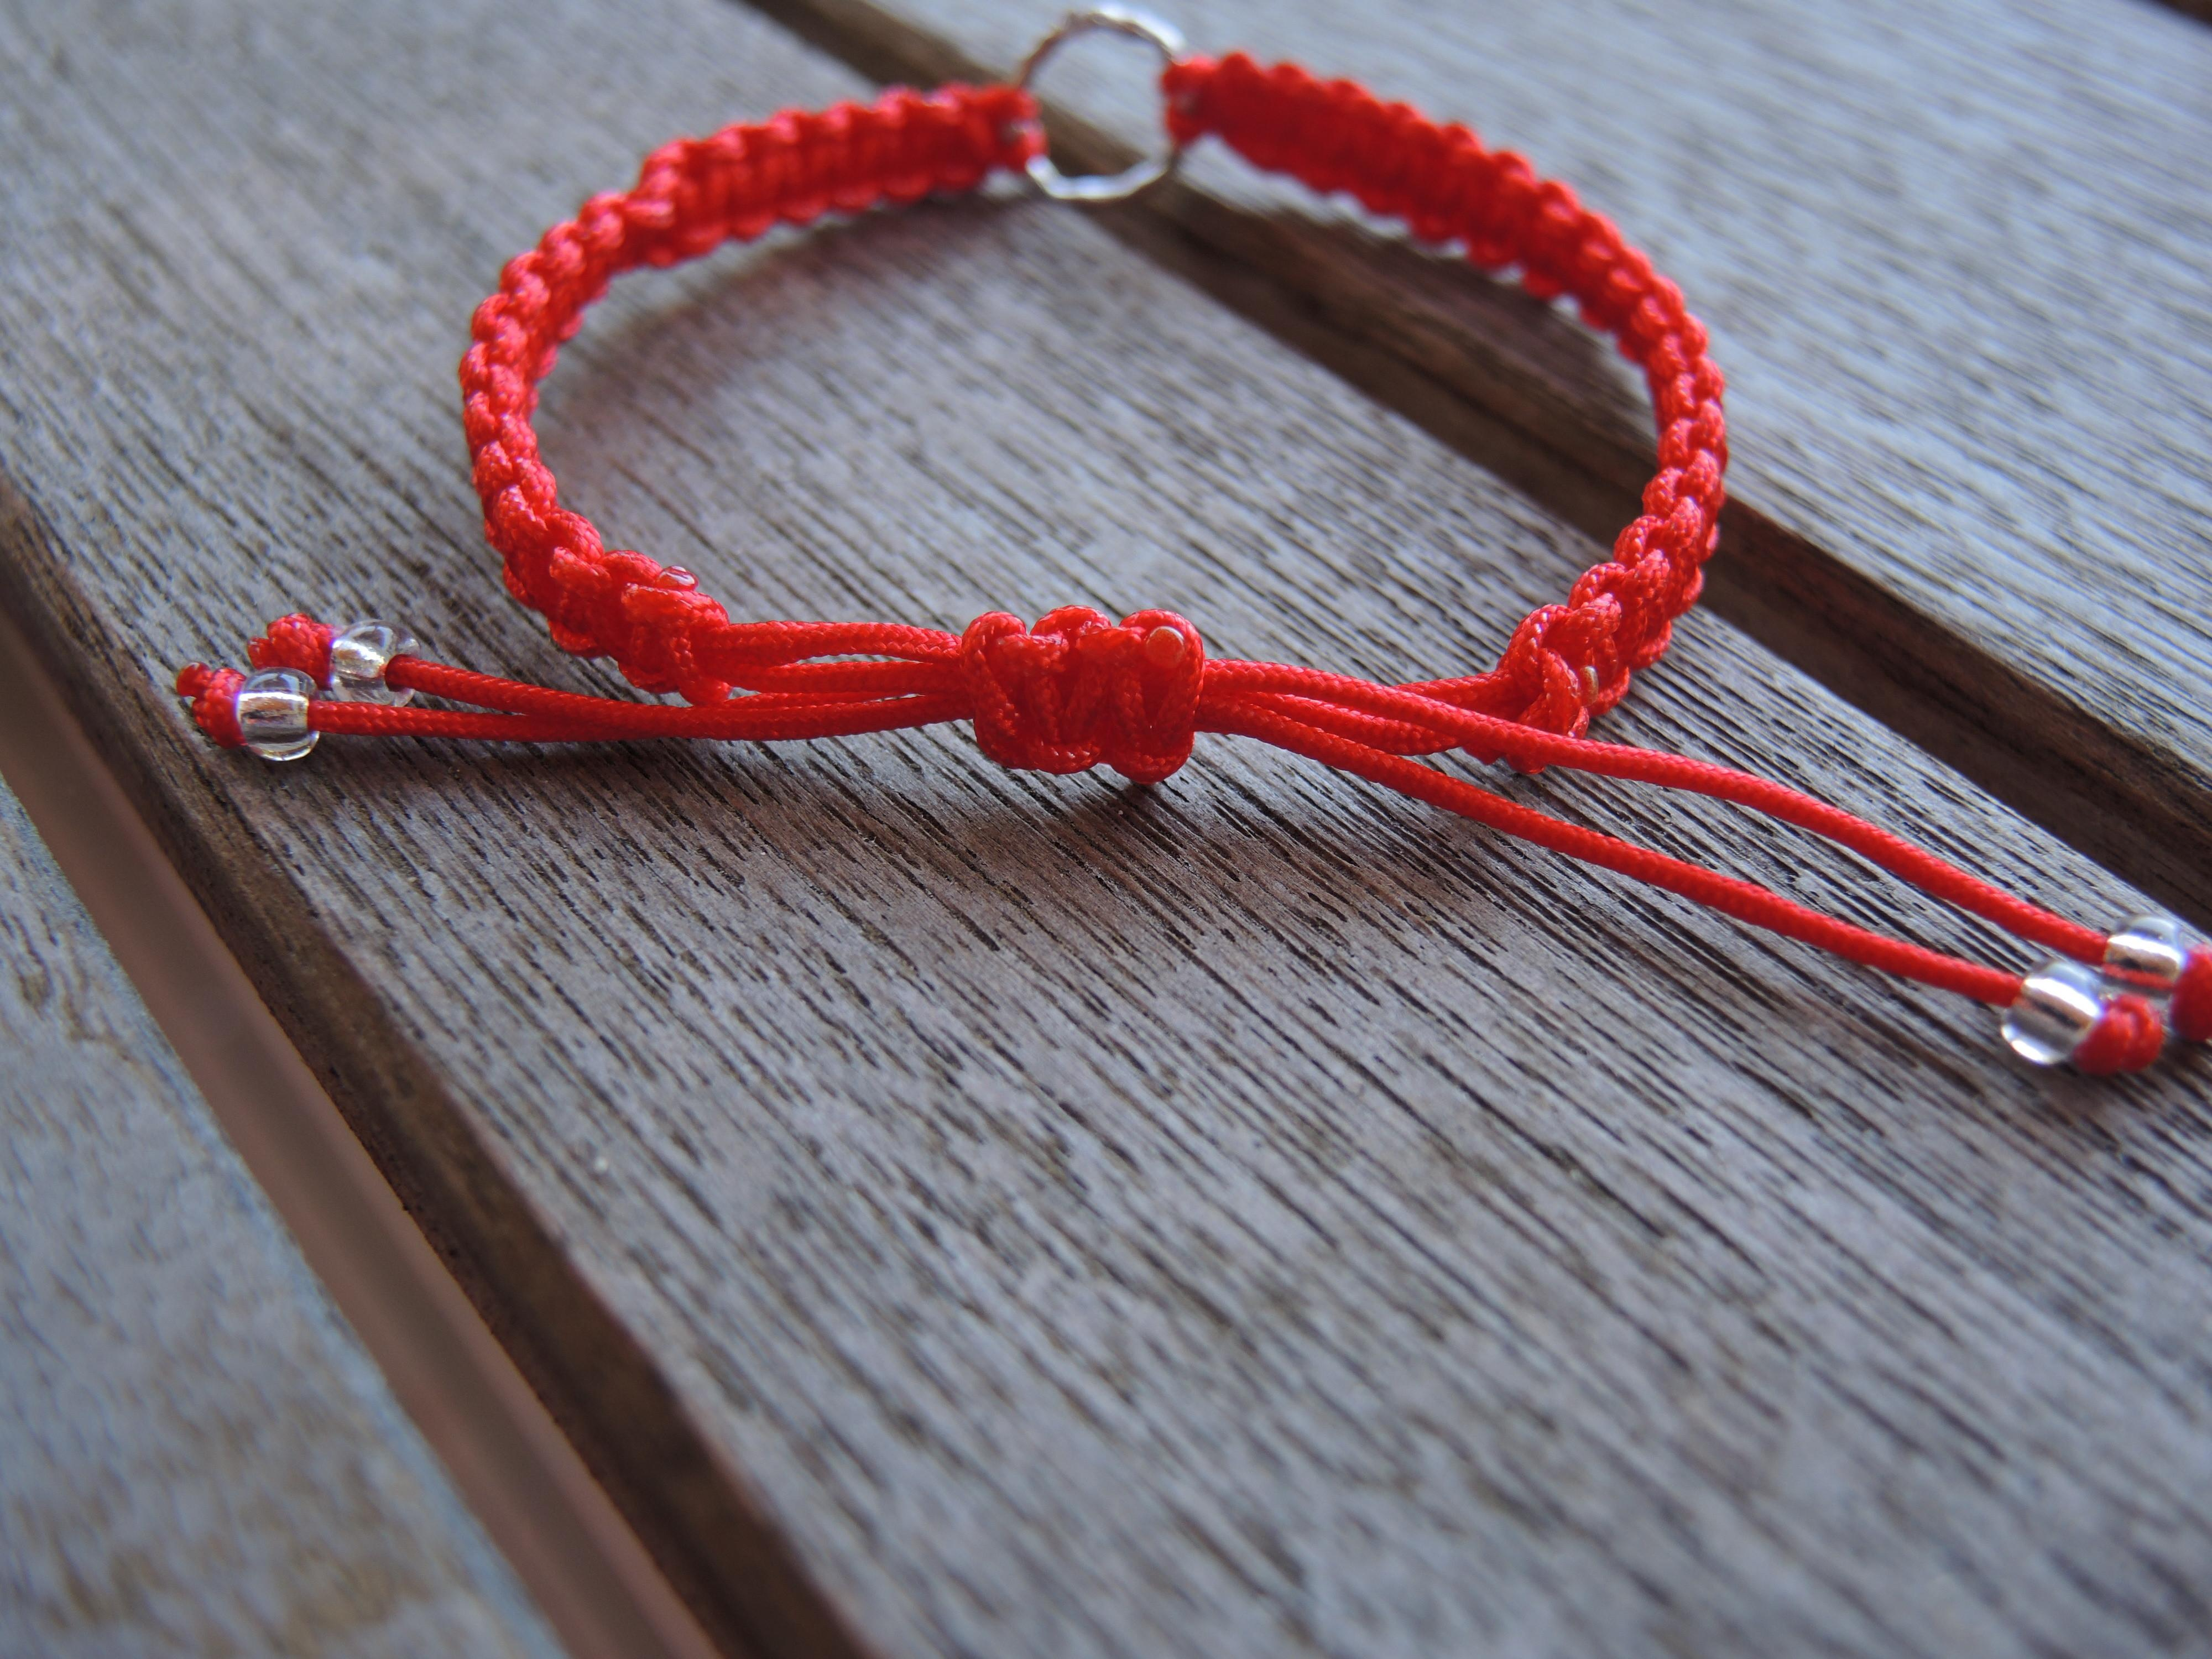 More Chinese Knotting Cord Bracelets Blueberry Hill Crafting